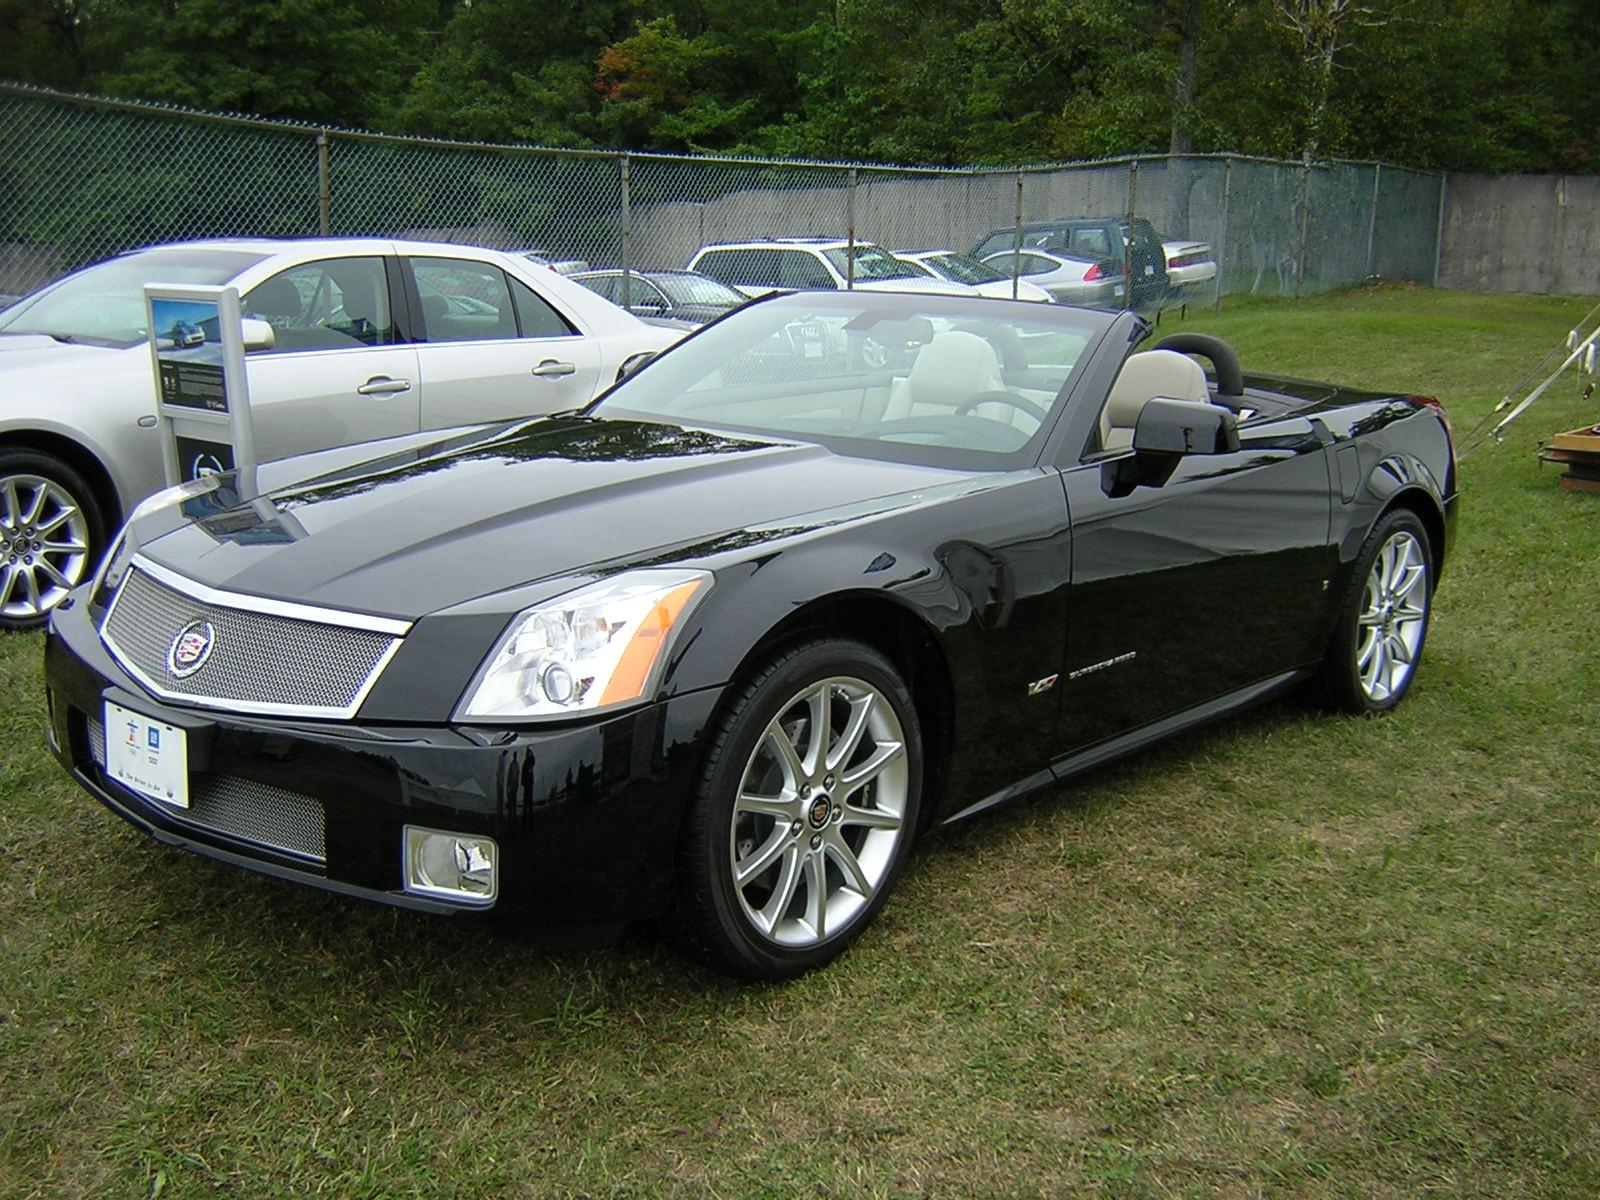 hight resolution of 800 1024 1280 1600 origin 2005 cadillac xlr